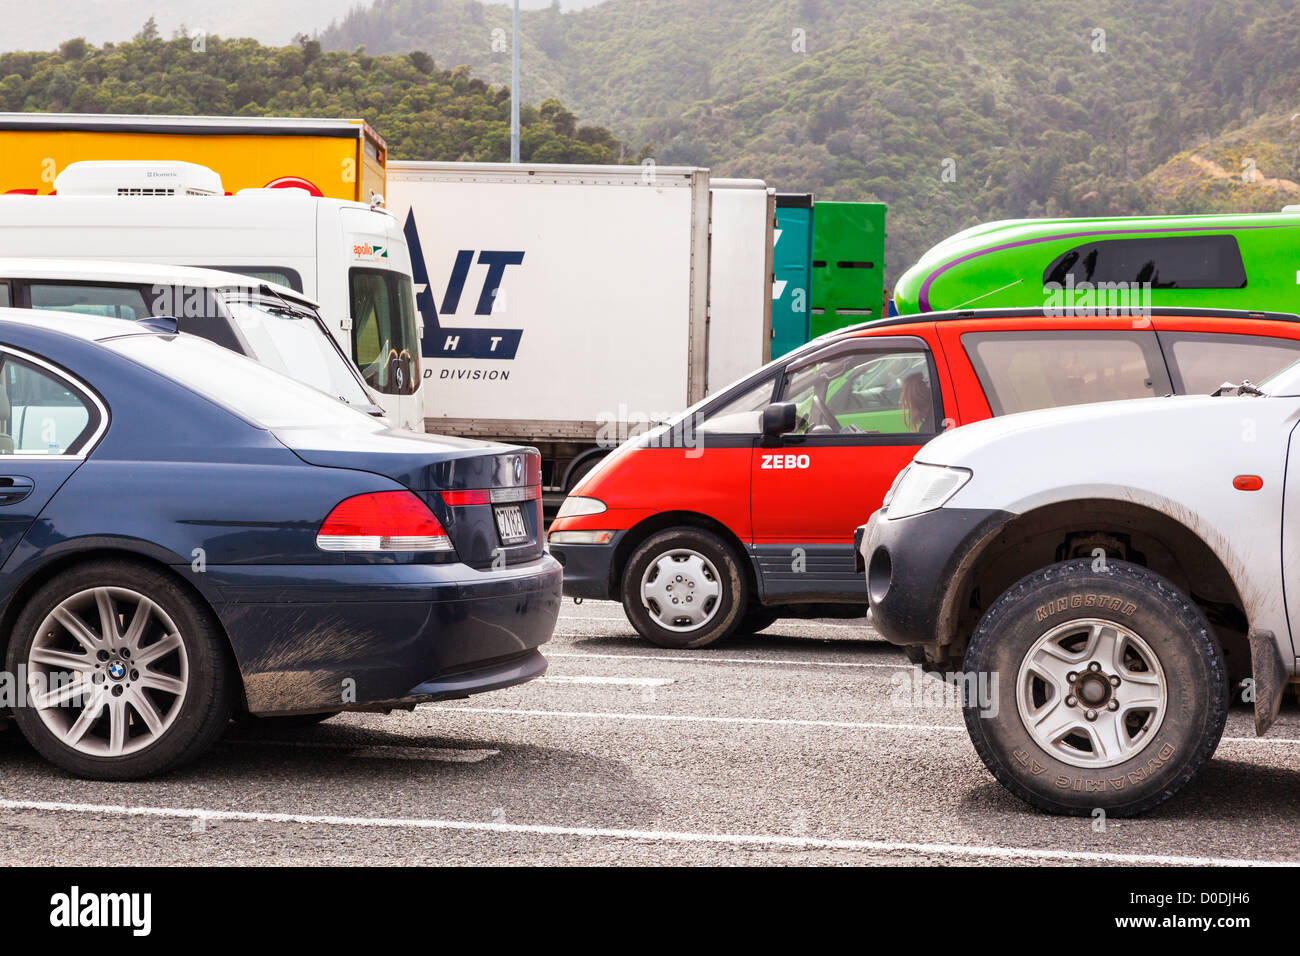 Cars, trucks and motorhomes lined up at Picton docks, waiting for the Wellington ferry. - Stock Image